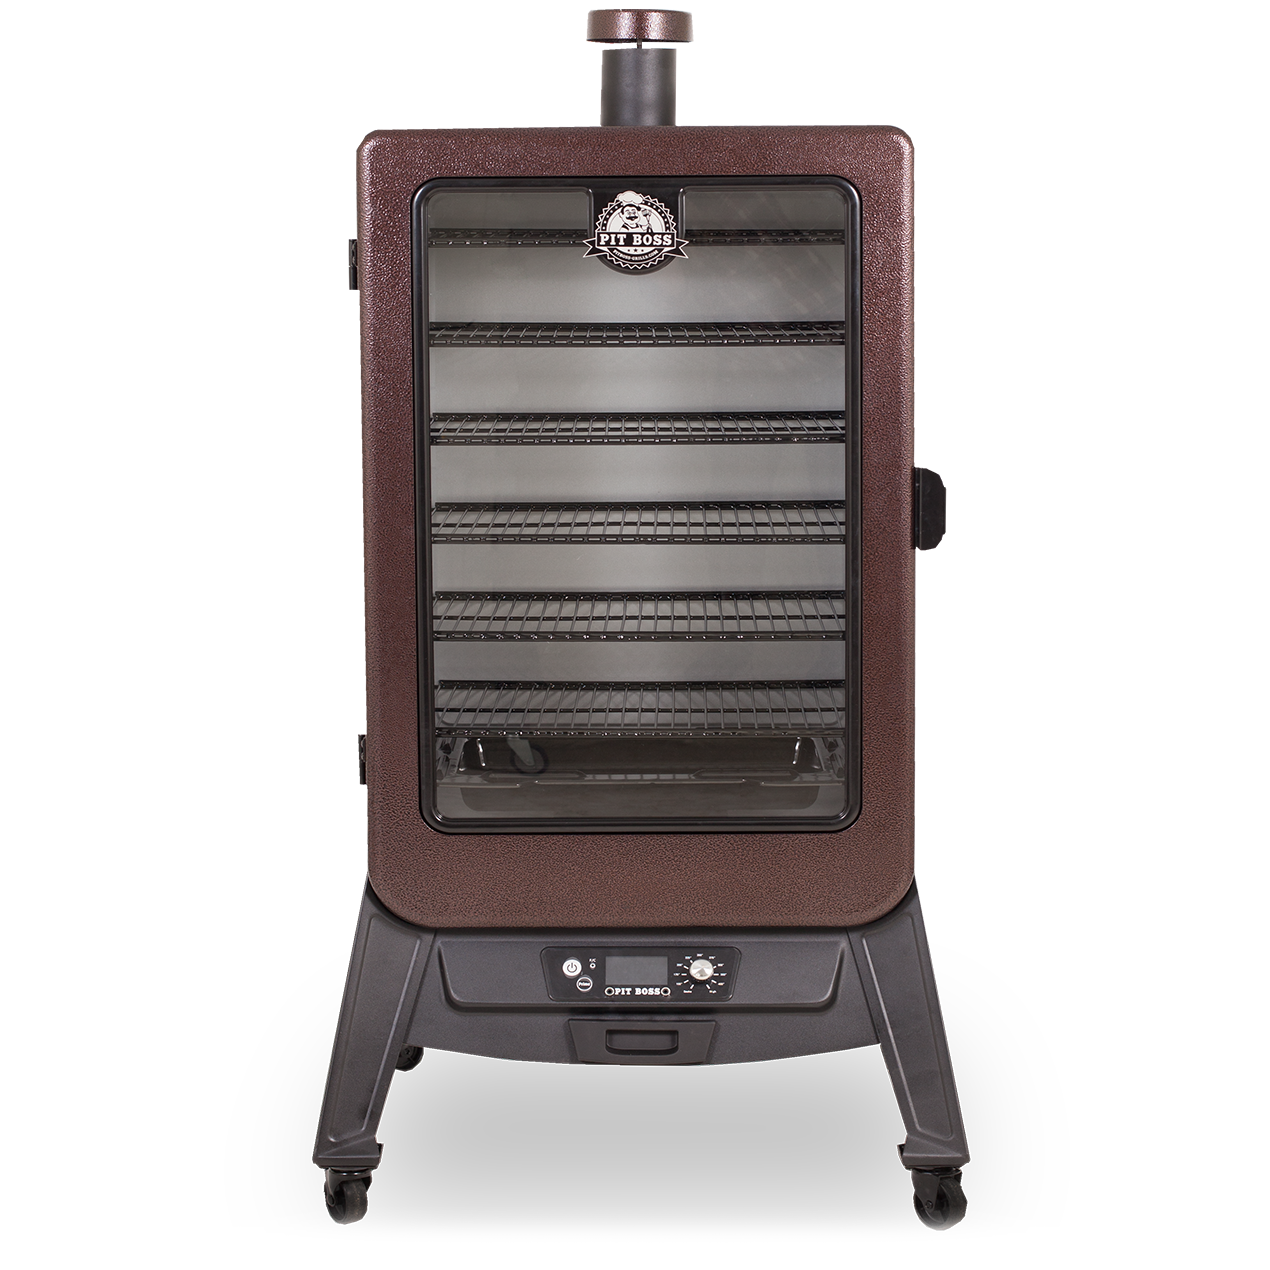 Pit Boss 7-SERIES WOOD PELLET VERTICAL SMOKER